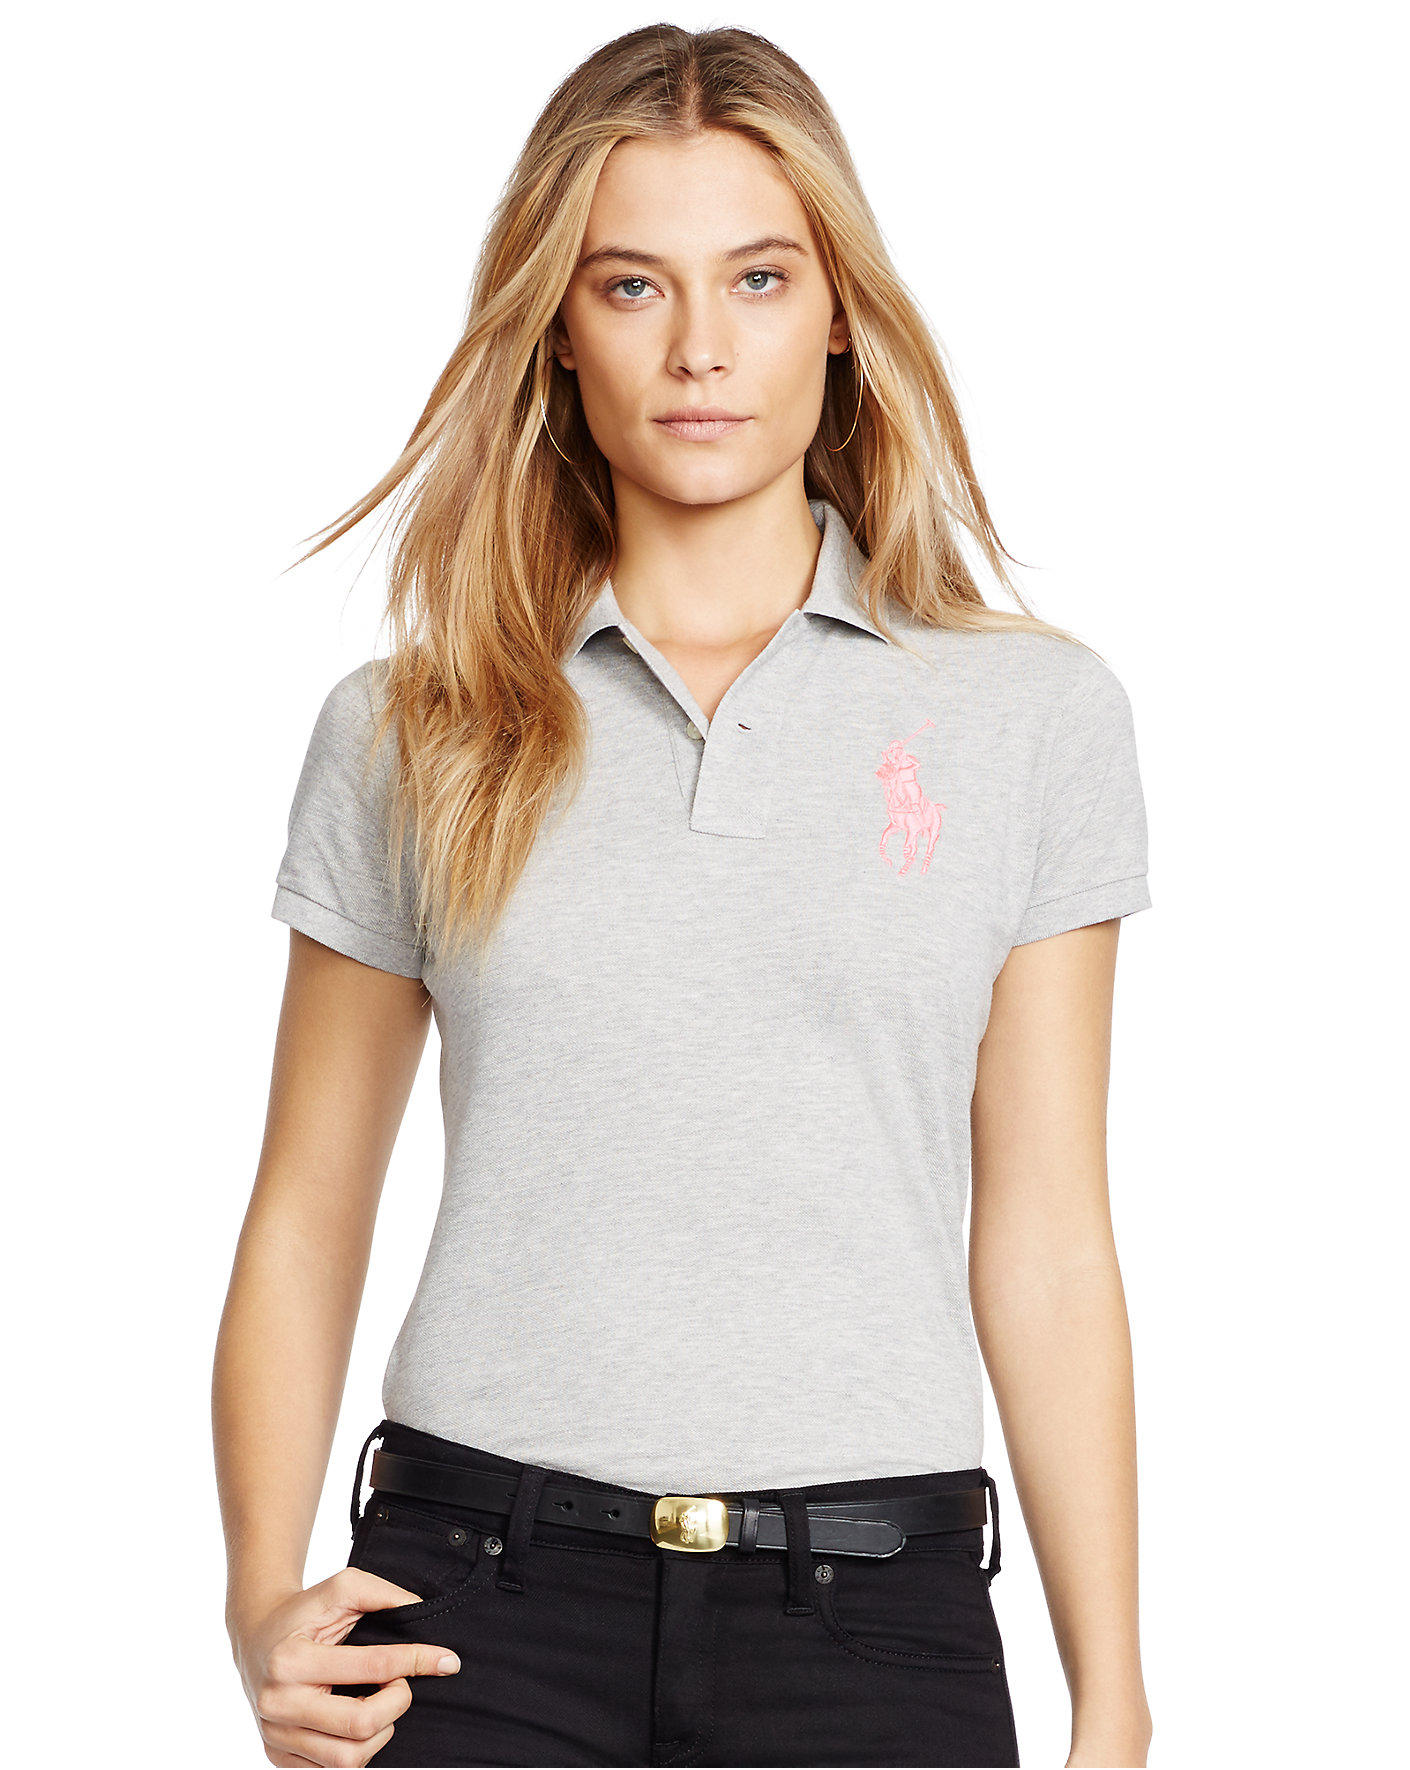 Ralph Lauren Pink Pony Polo Shirt